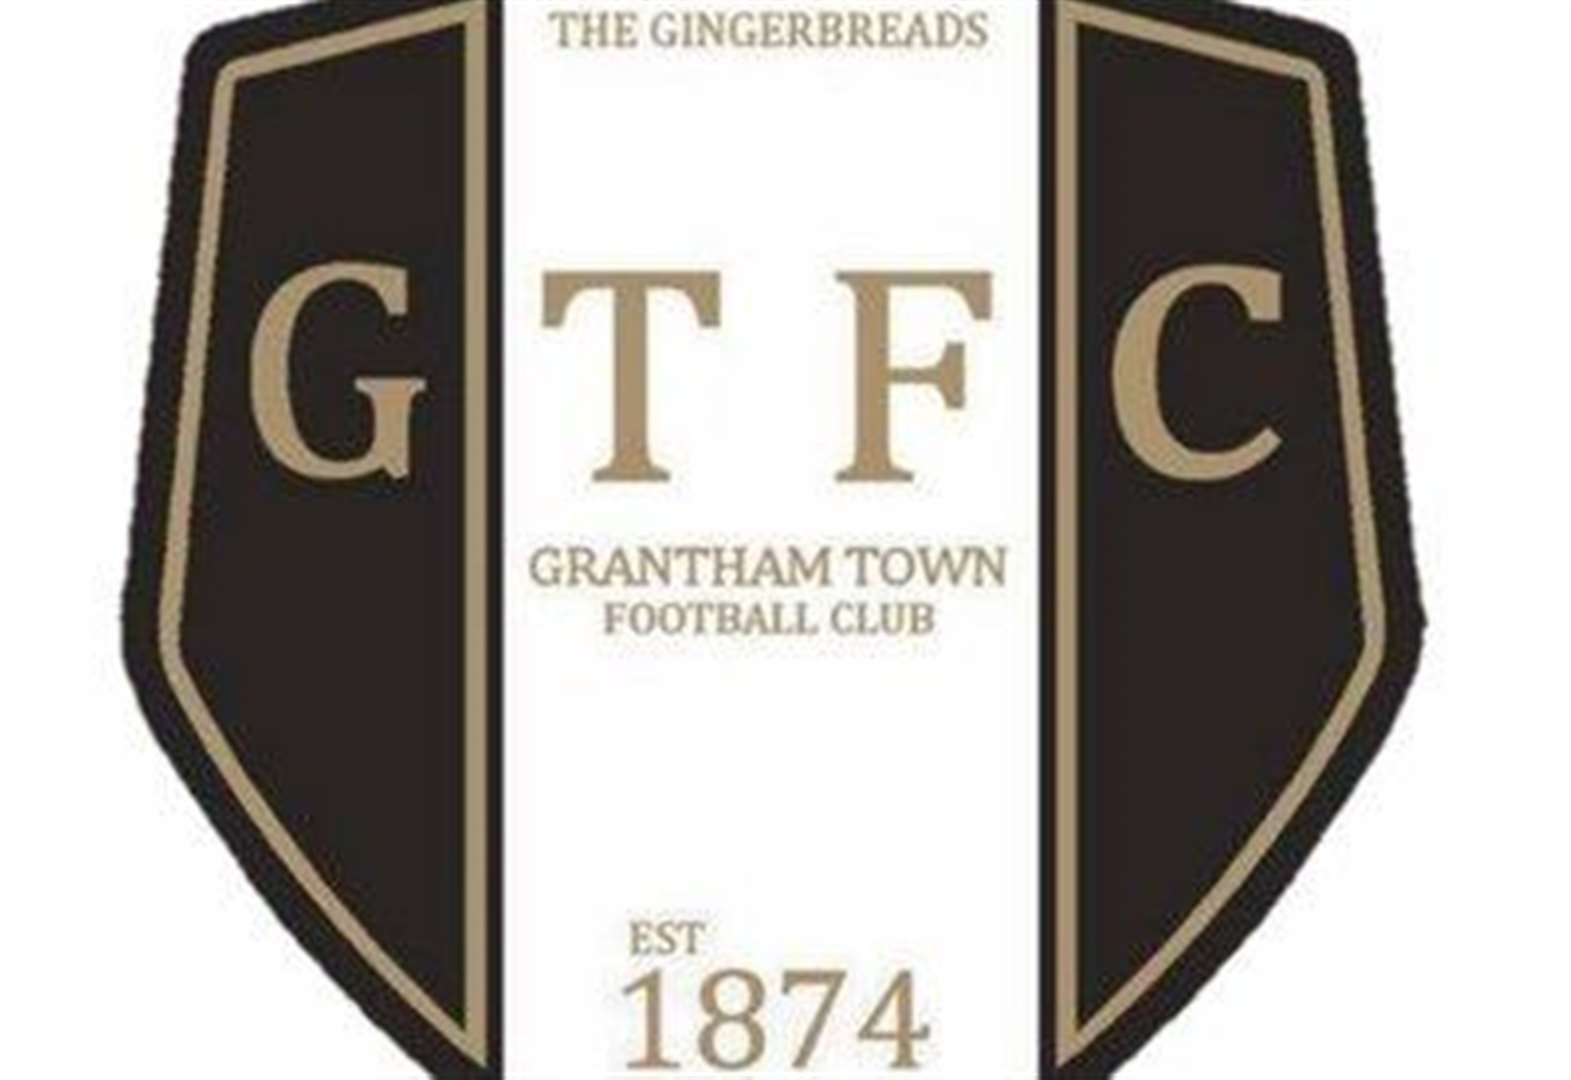 Gingerbreads return to league action at home tonight